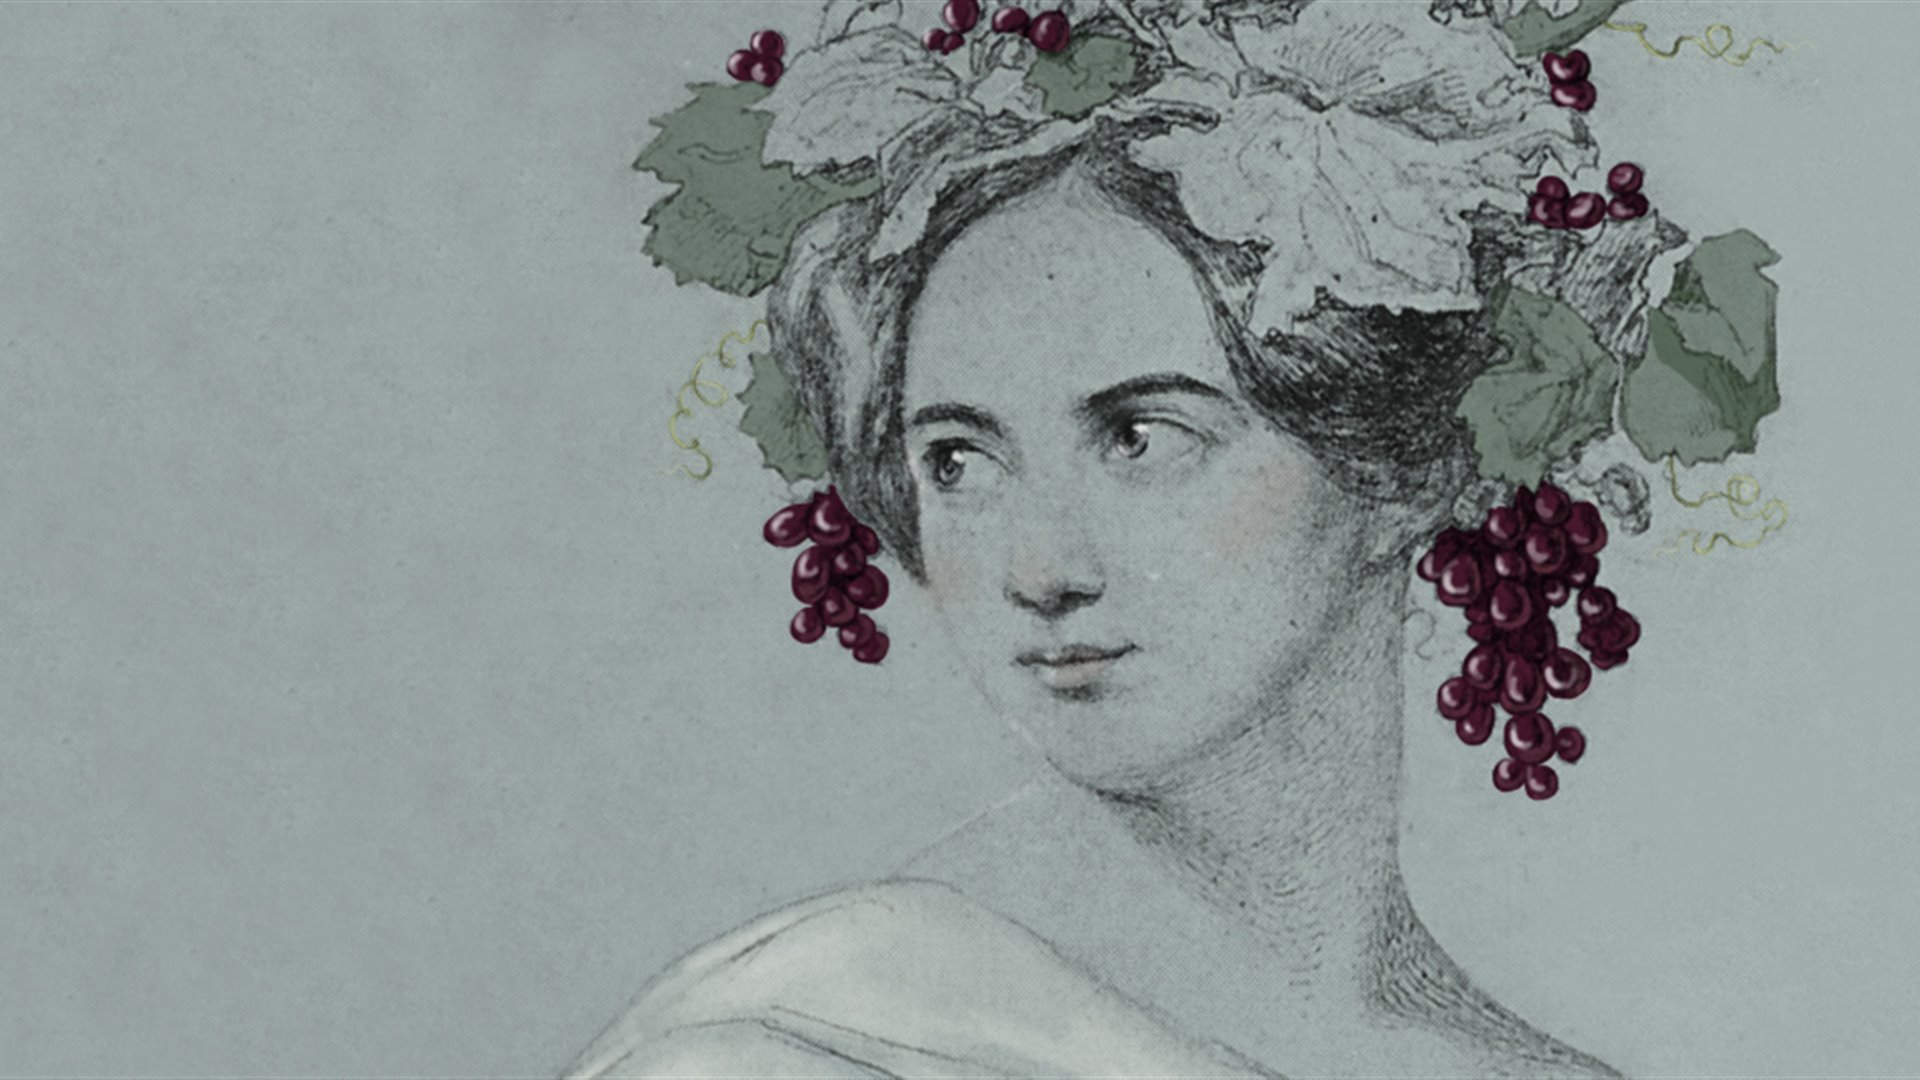 Fanny Mendelssohn and Women in Musical Composition